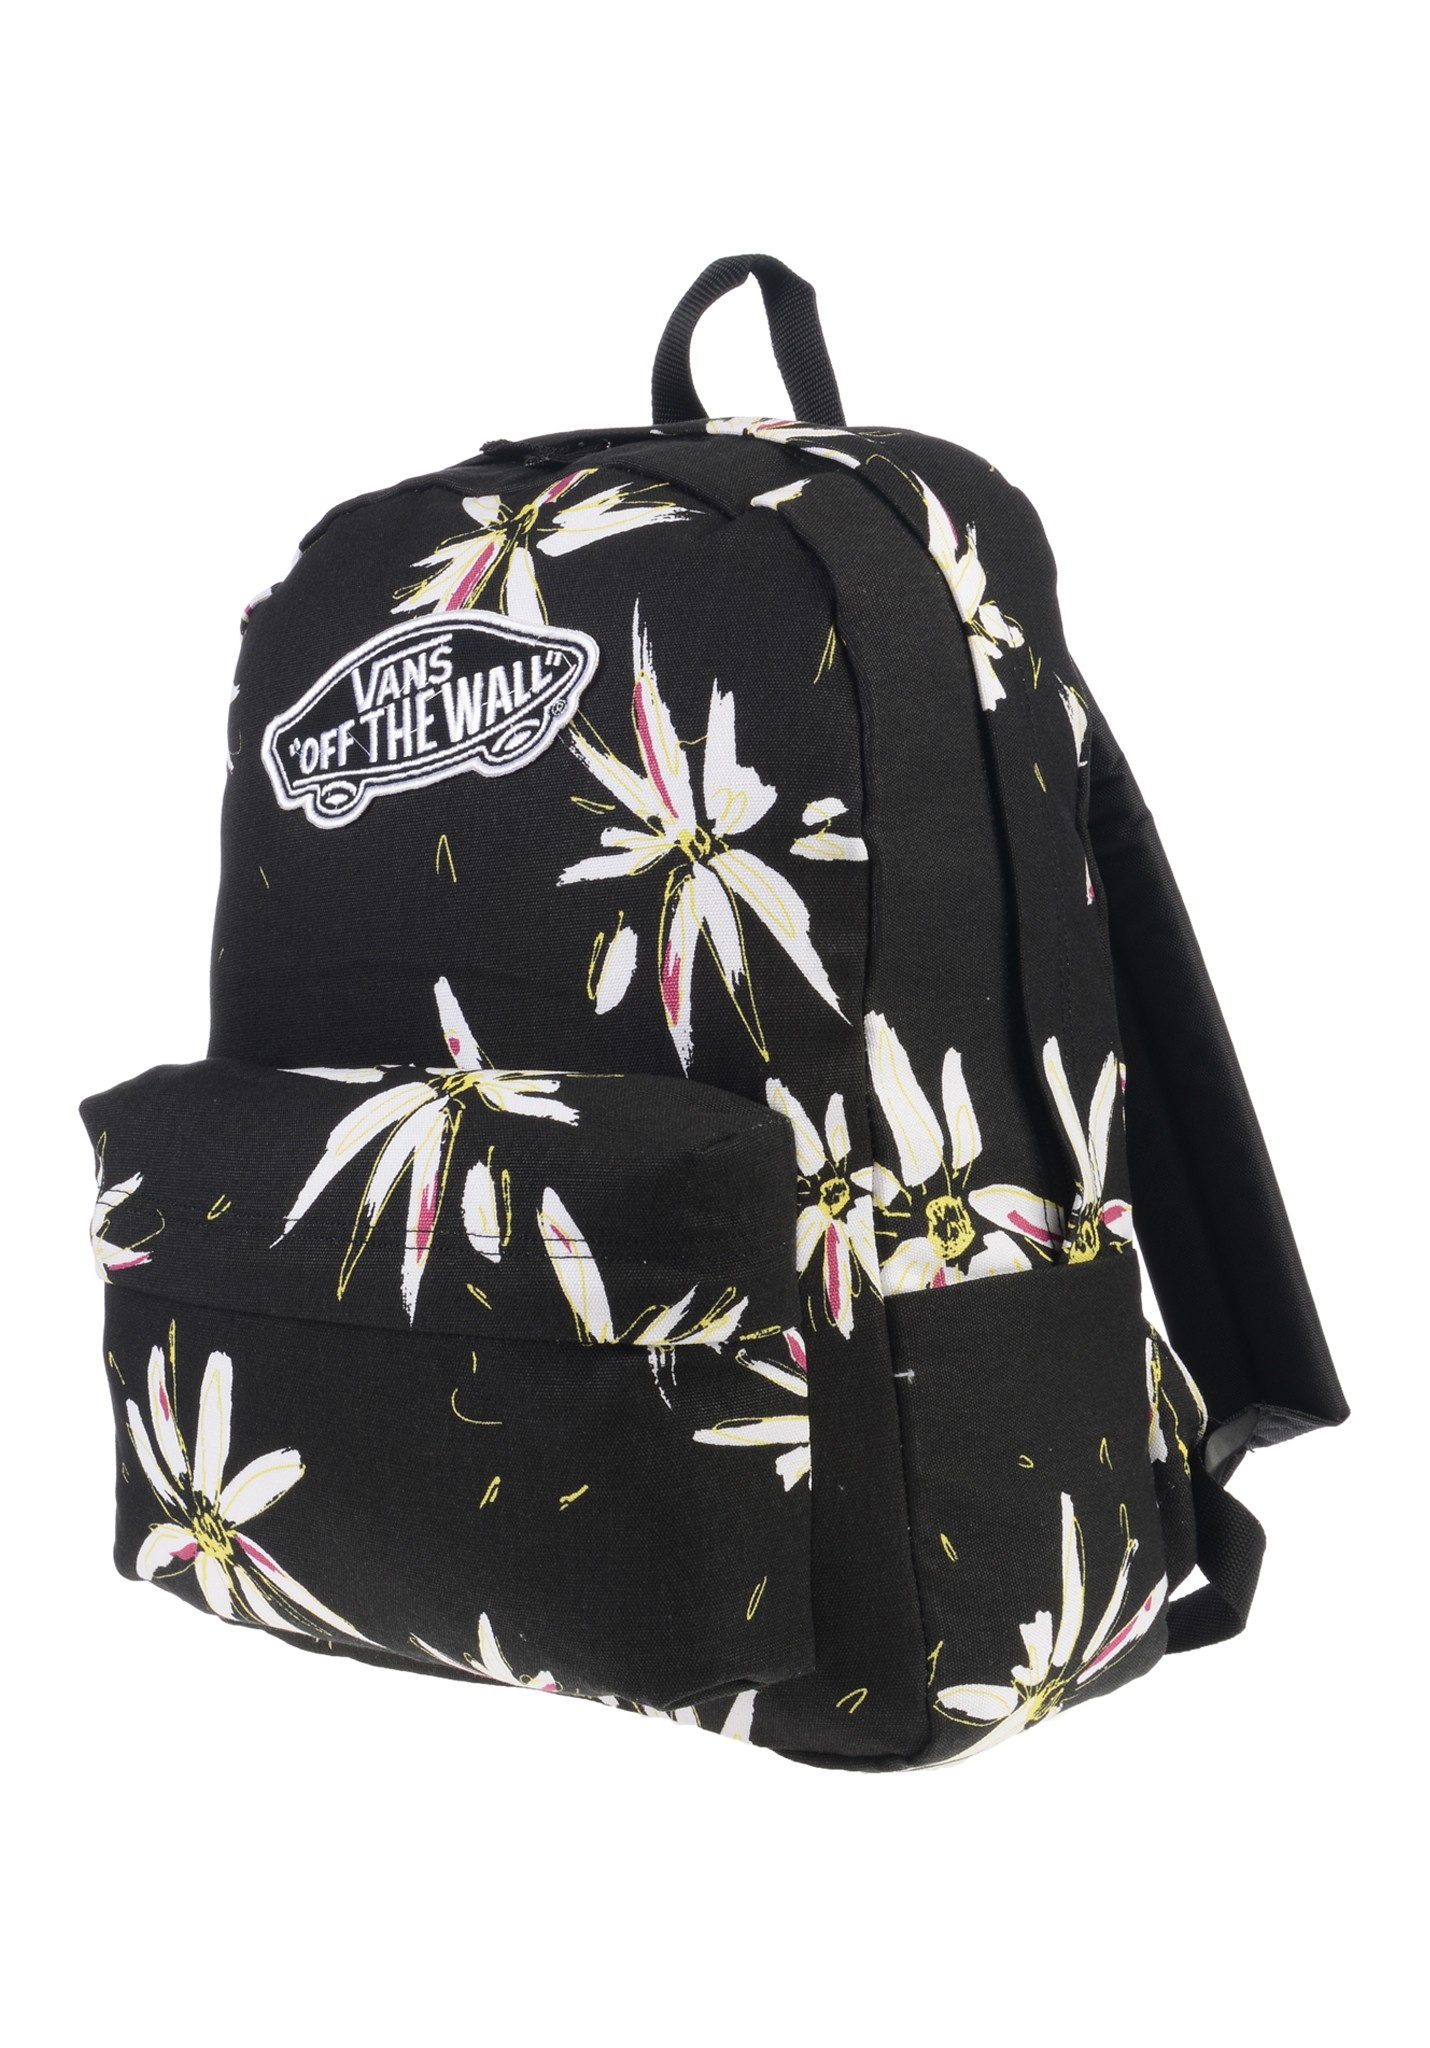 neu vans realm backpack damen rucksack ebay. Black Bedroom Furniture Sets. Home Design Ideas